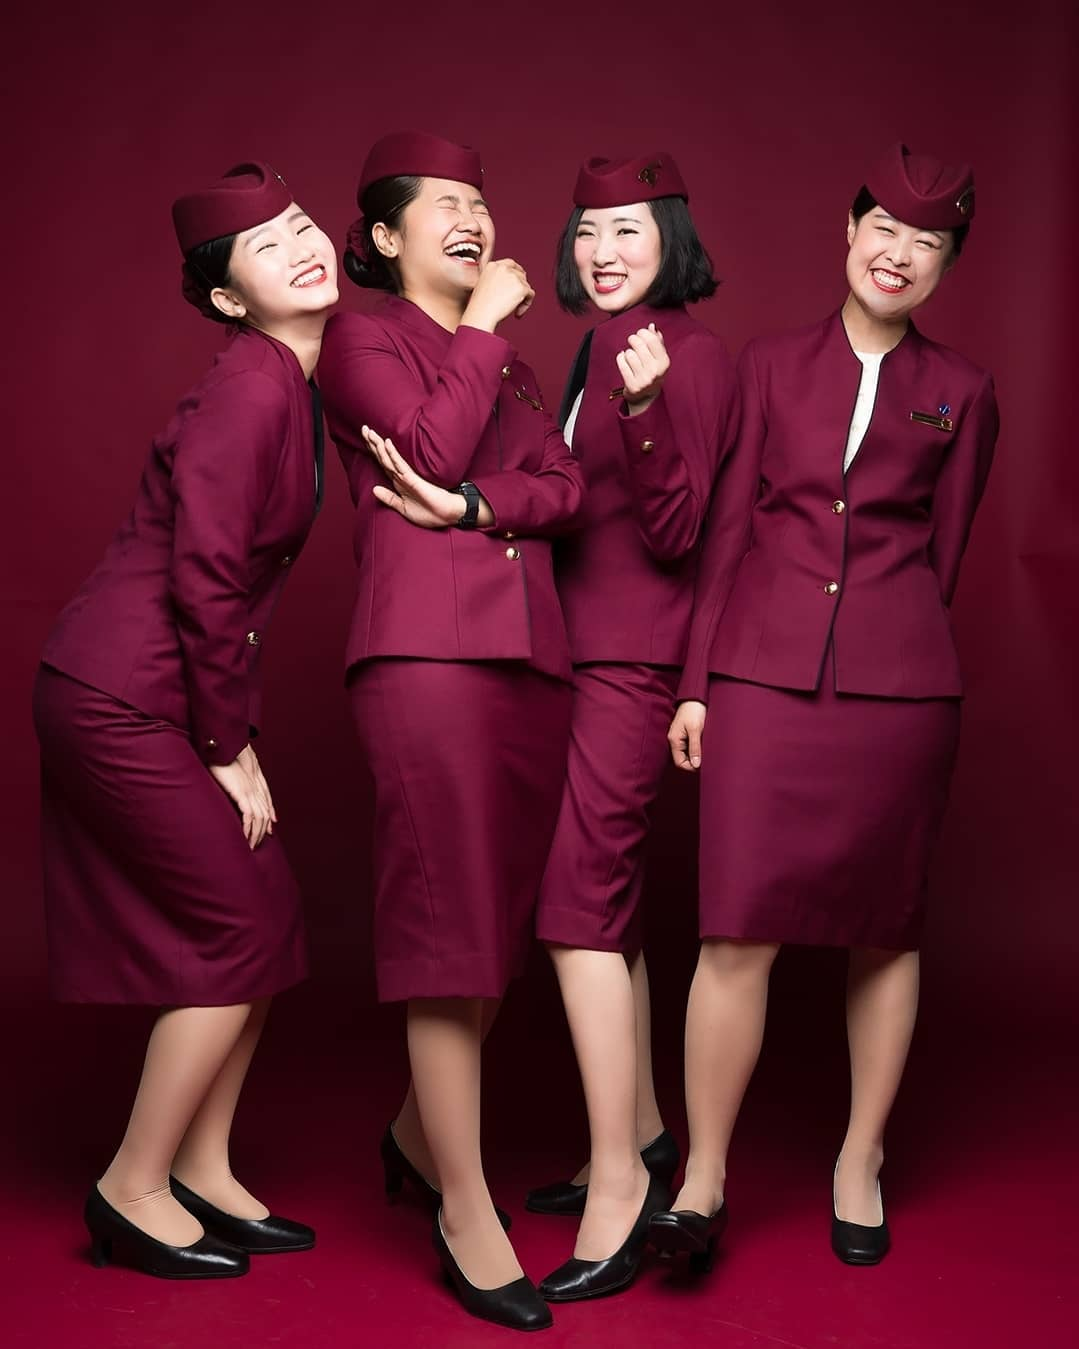 qatar 4 cabin crew women in uniform